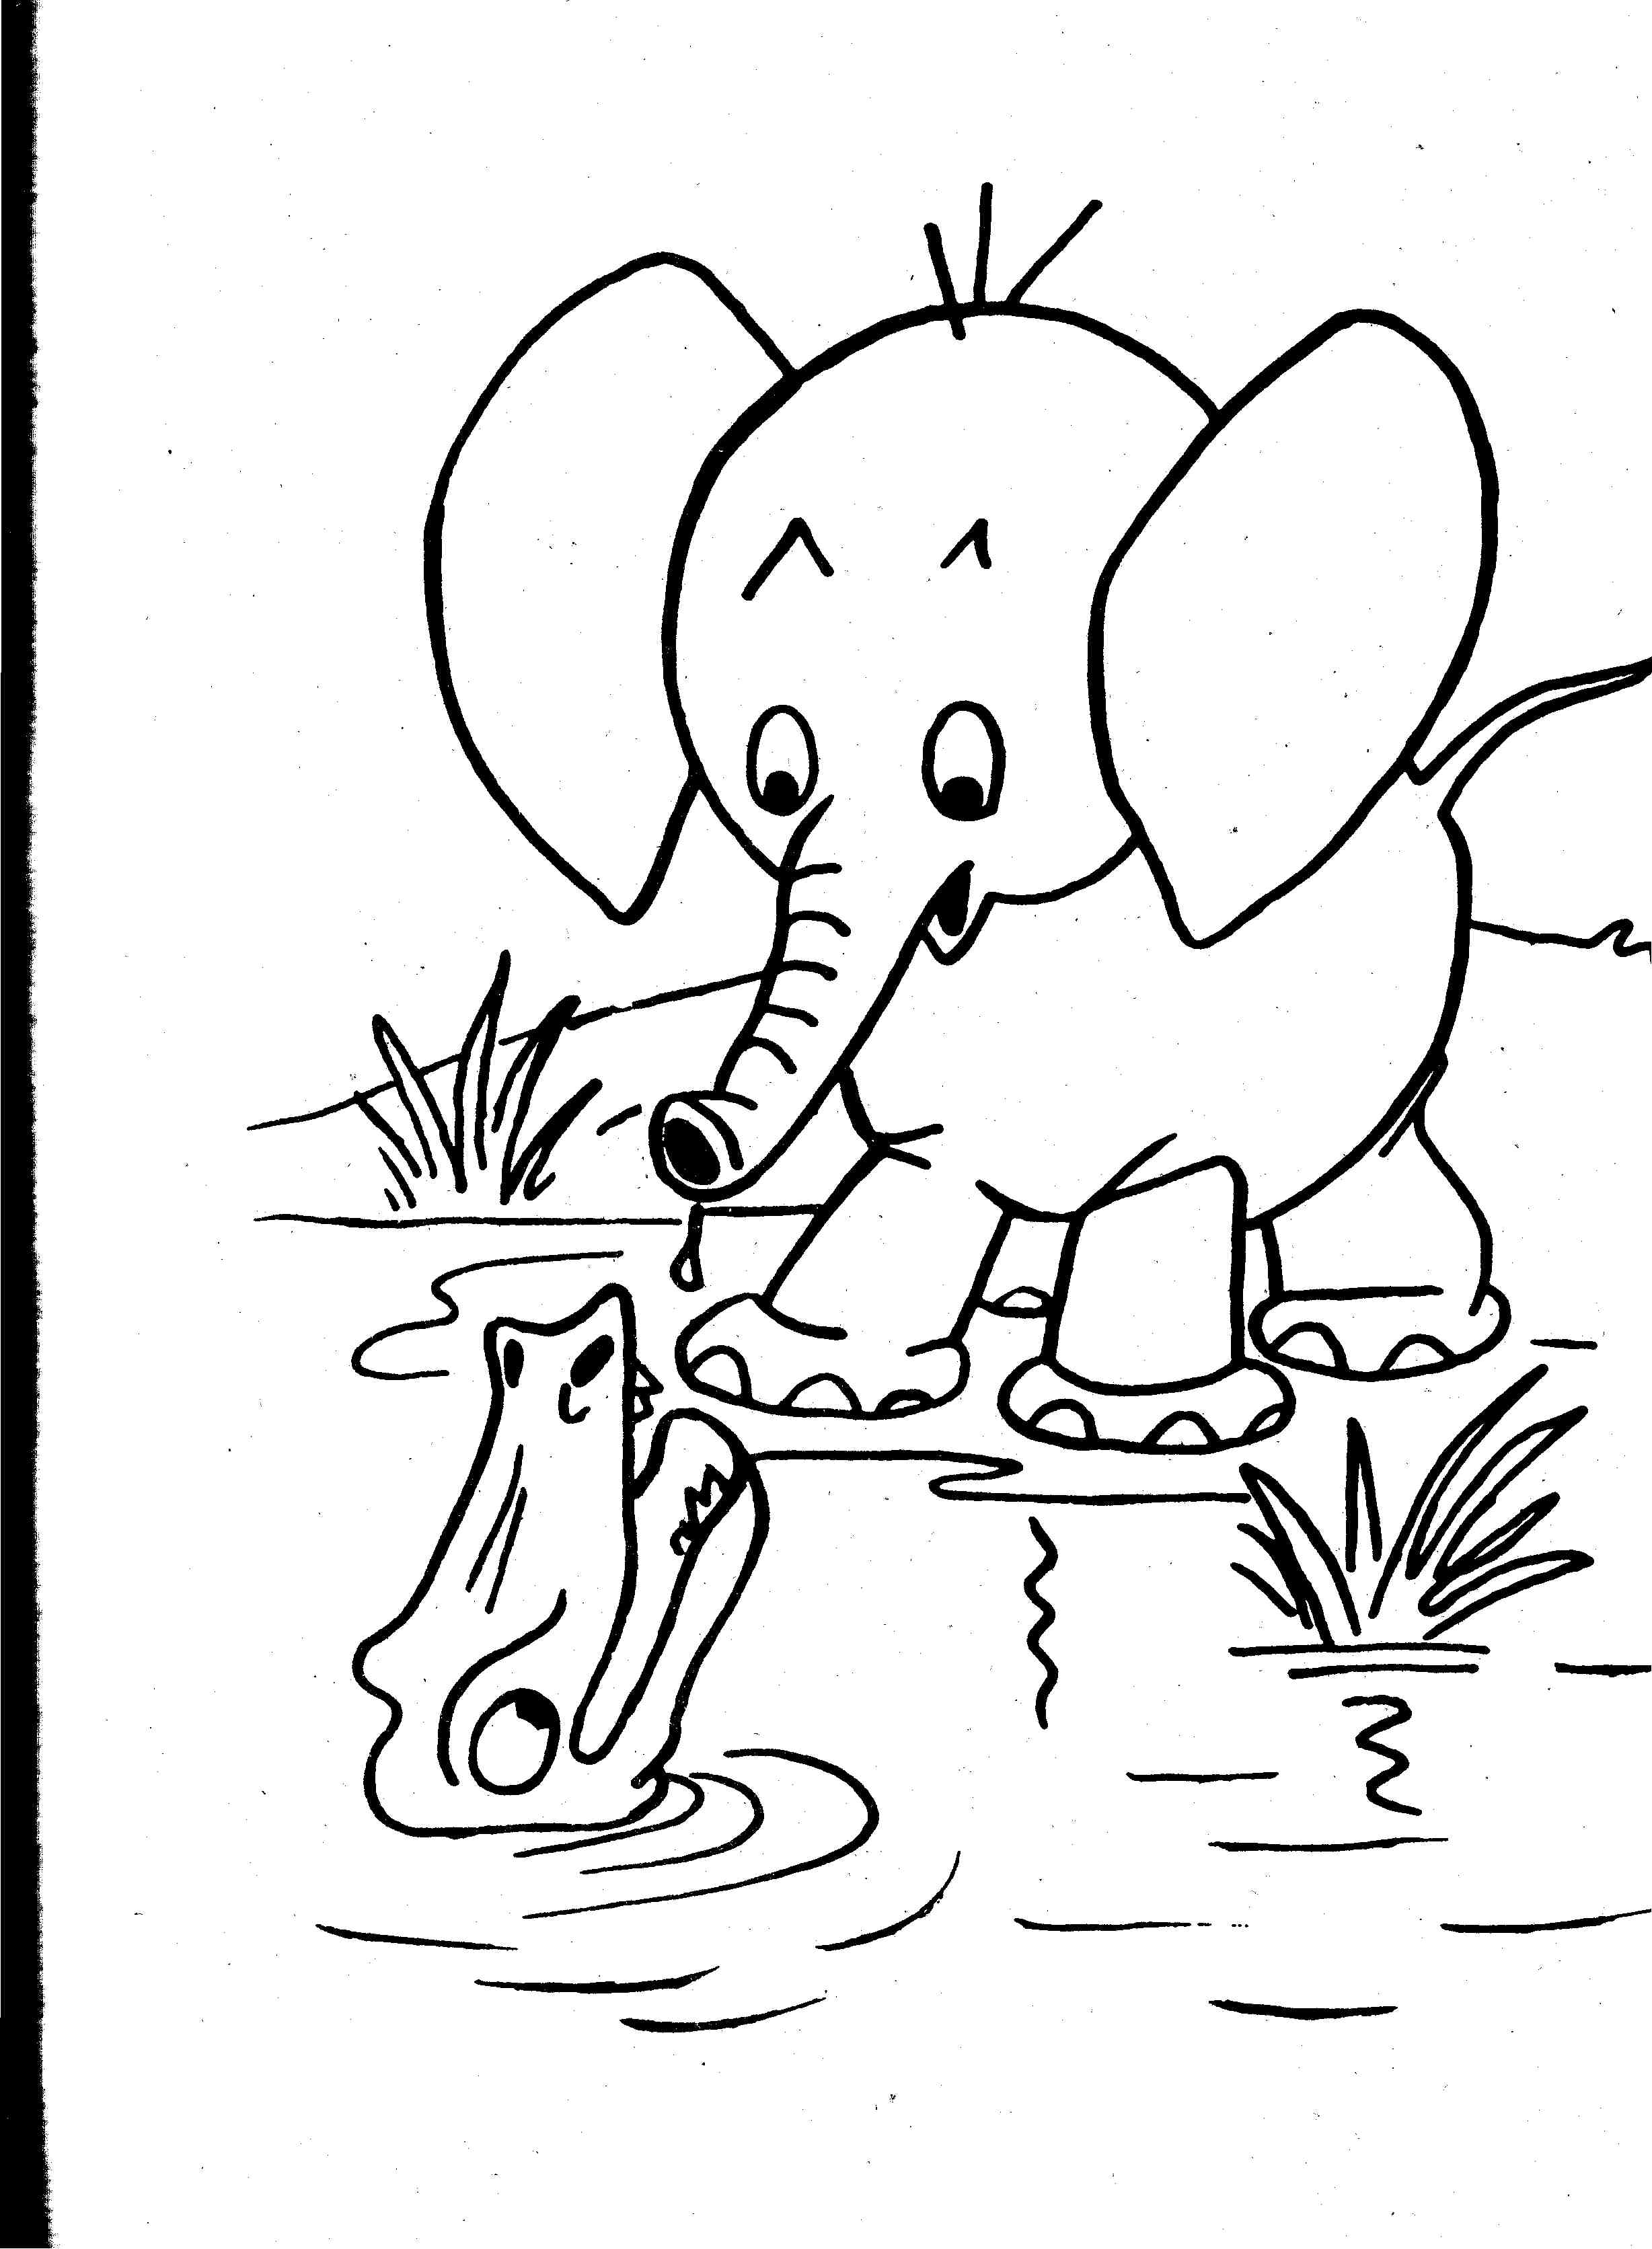 coloring worksheets animals animal coloring pages for adults best coloring pages for coloring worksheets animals